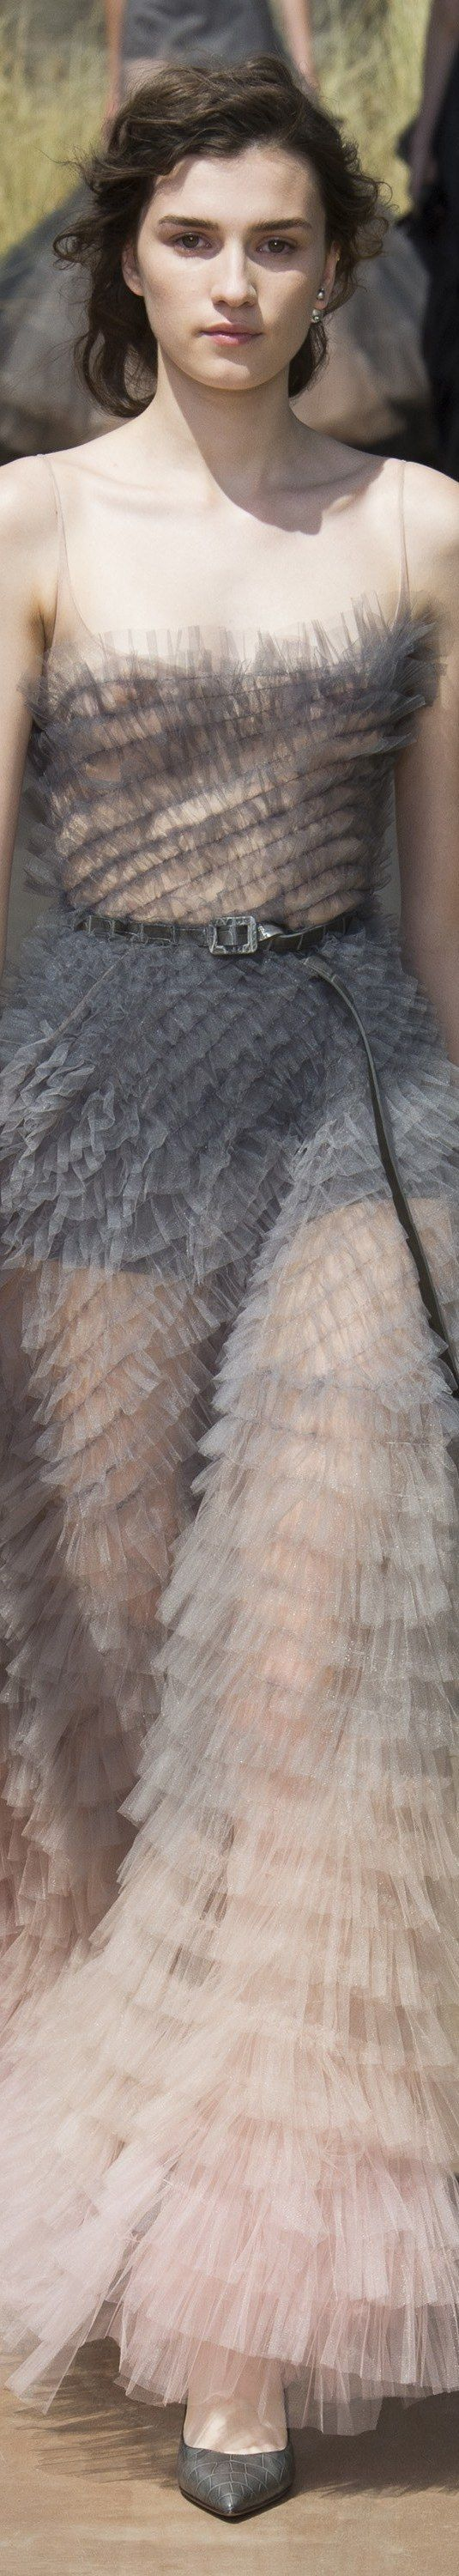 Christian Dior - Fall 2017 Couture - Runway photo of grey feather dress ~ The grey feathers changing to pink are very avant grade!!! But I don't think I am much of a feather person